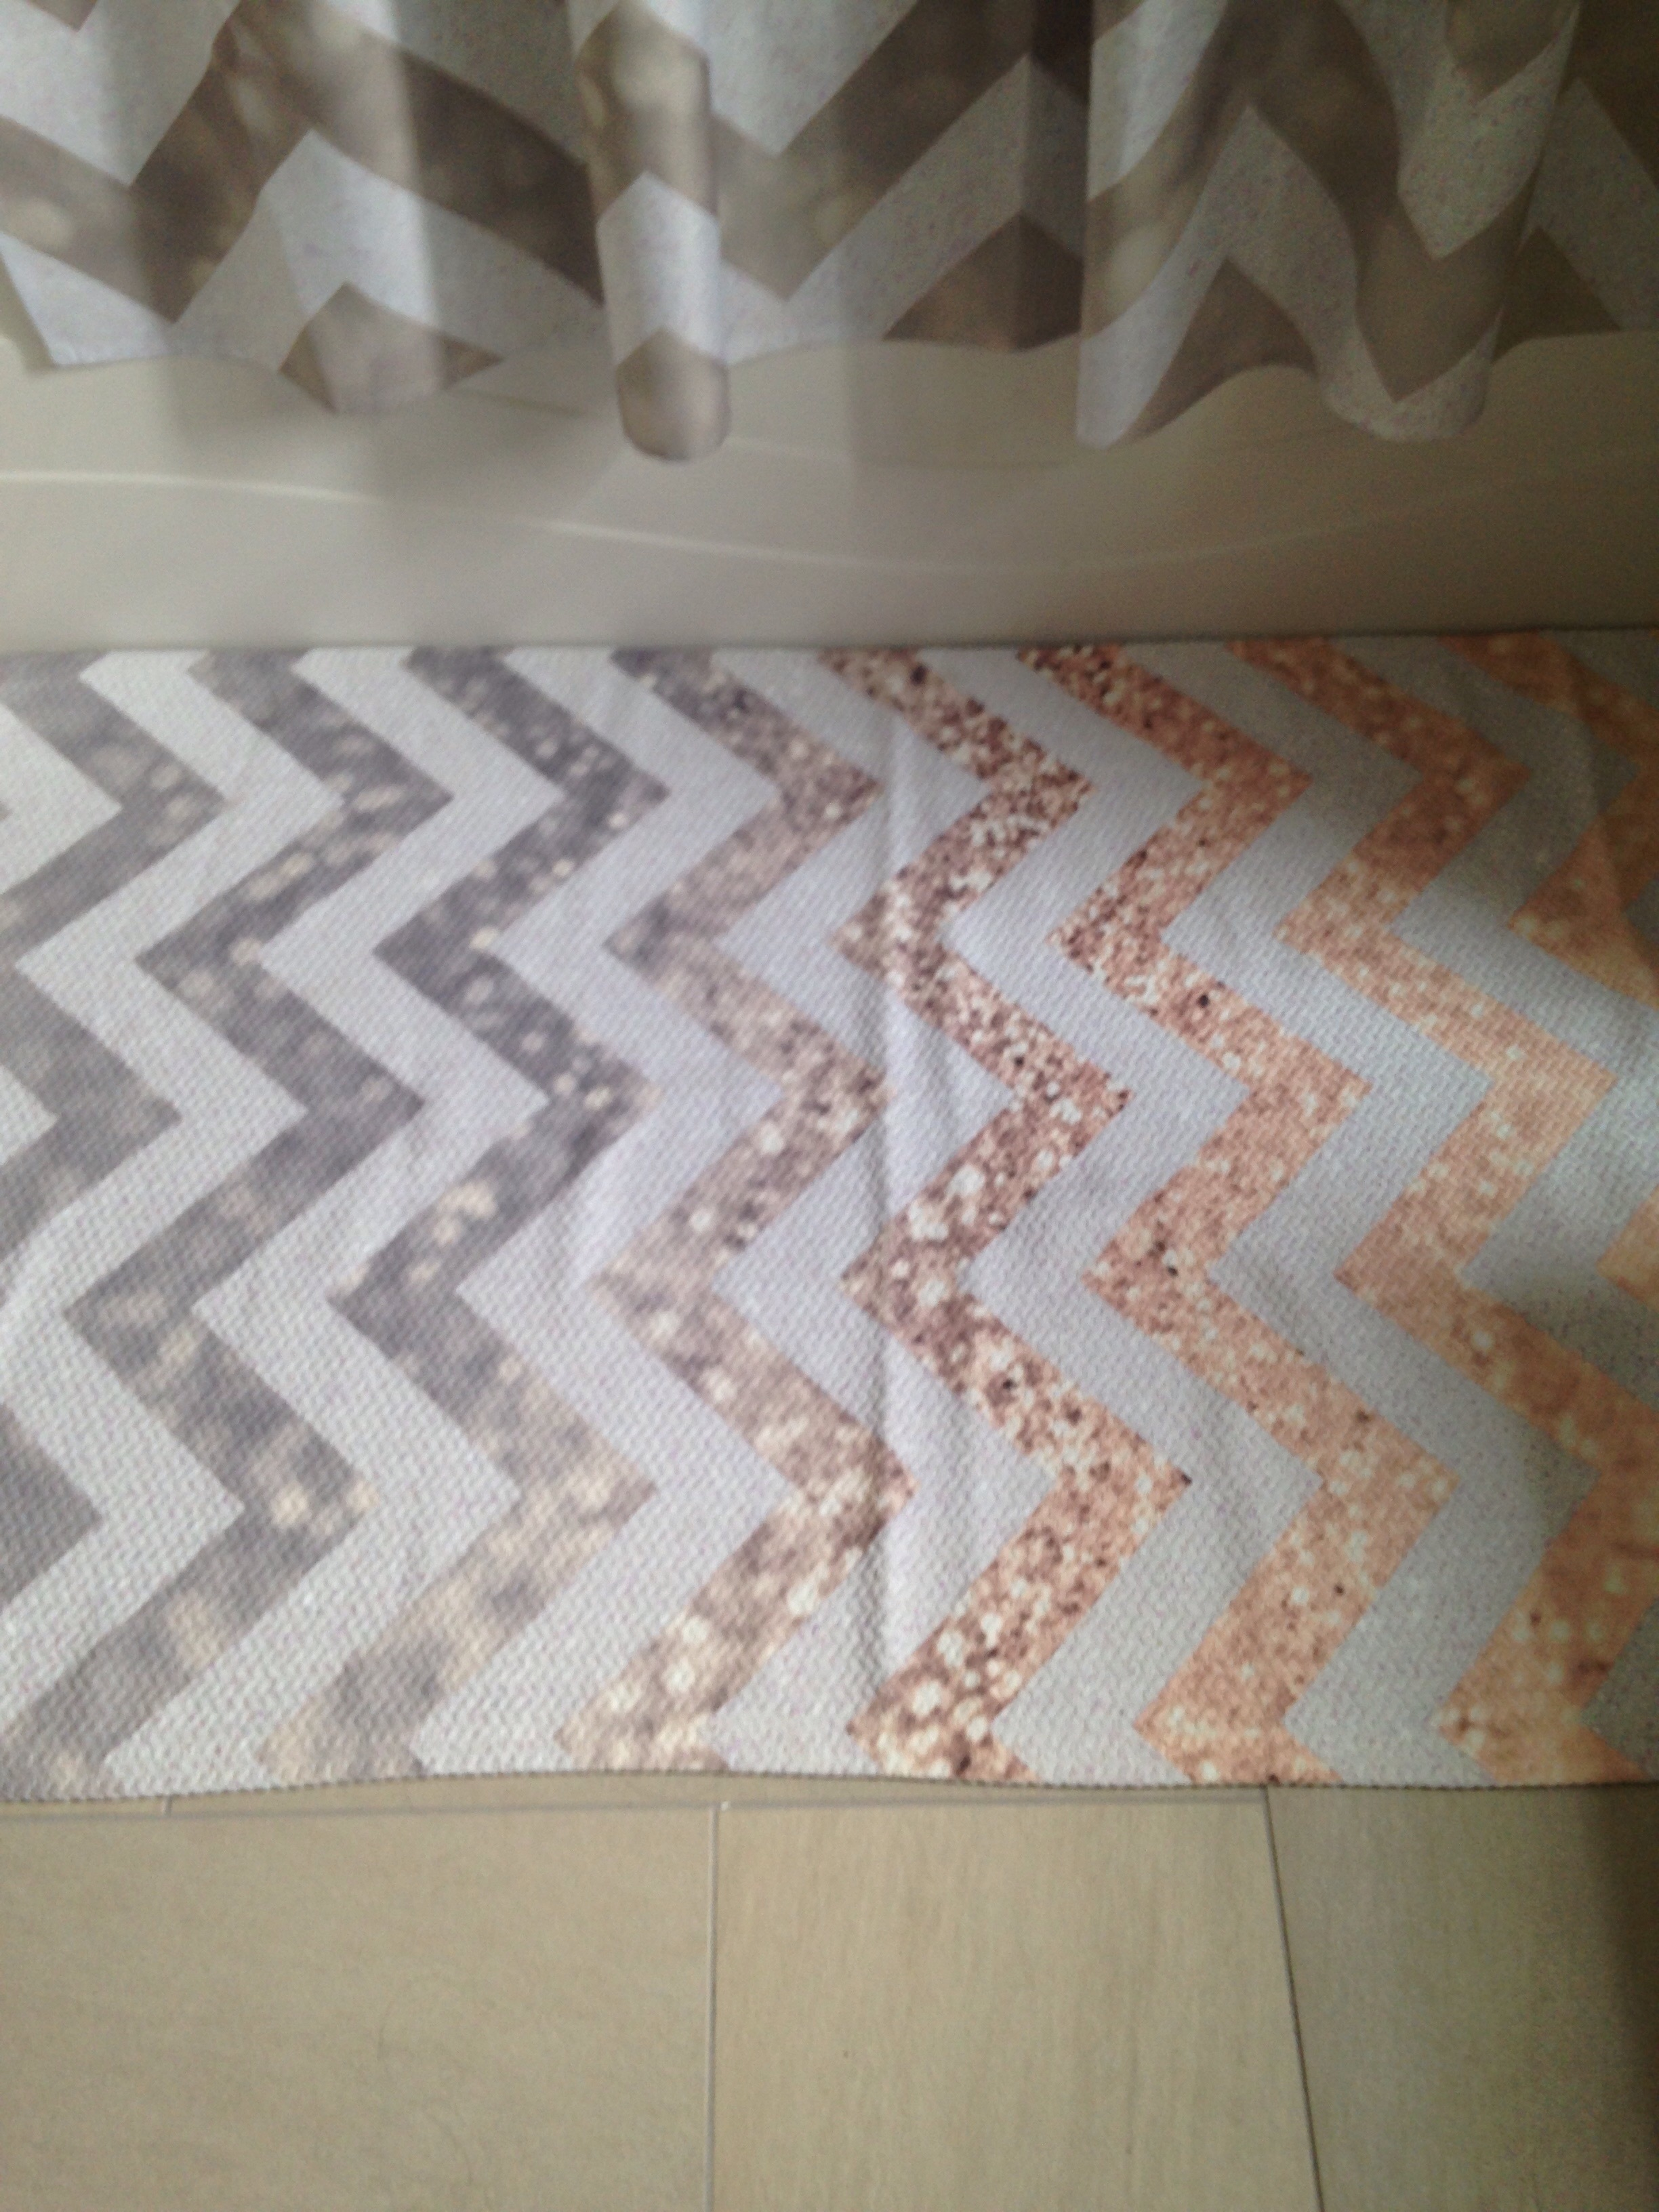 Society 6 Bathroom Rugs Reviews In Home Decor